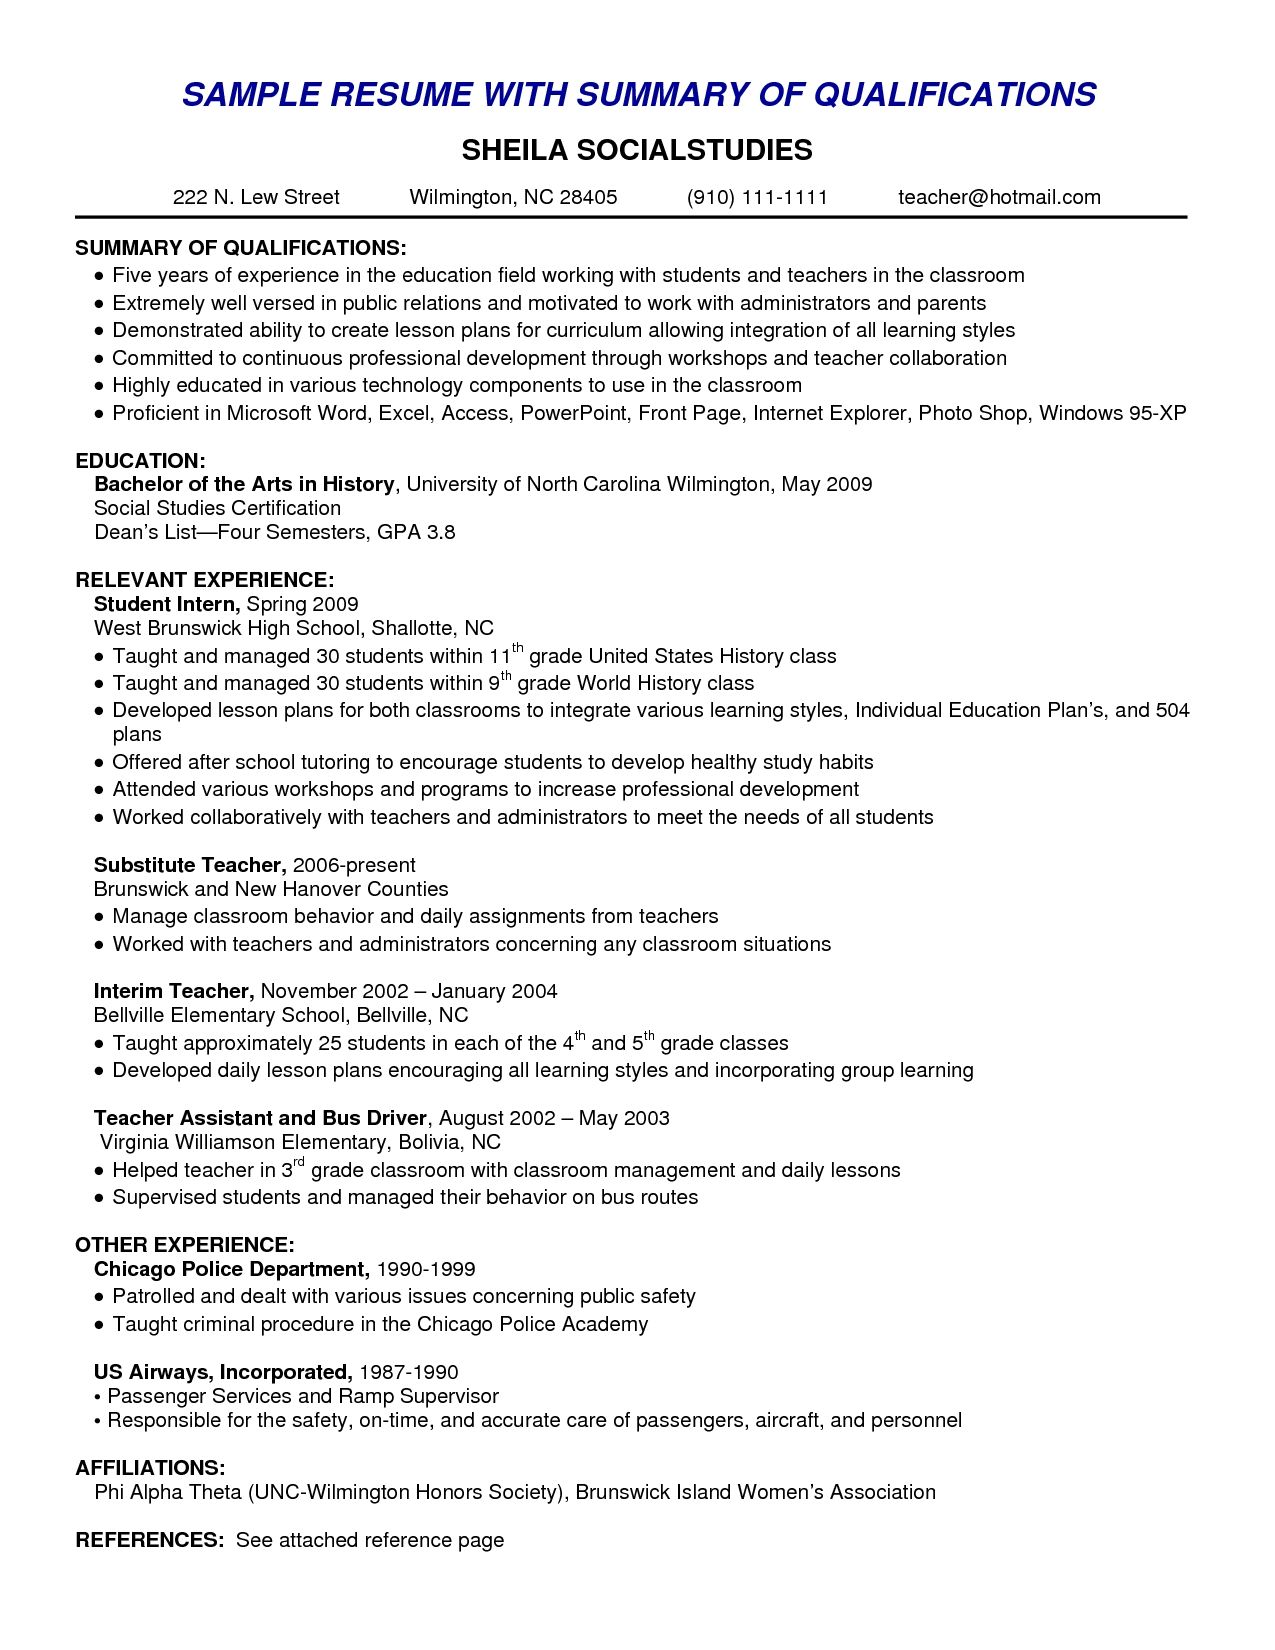 Resume Summary Of Skills Examples - Venturecapitalupdate.com